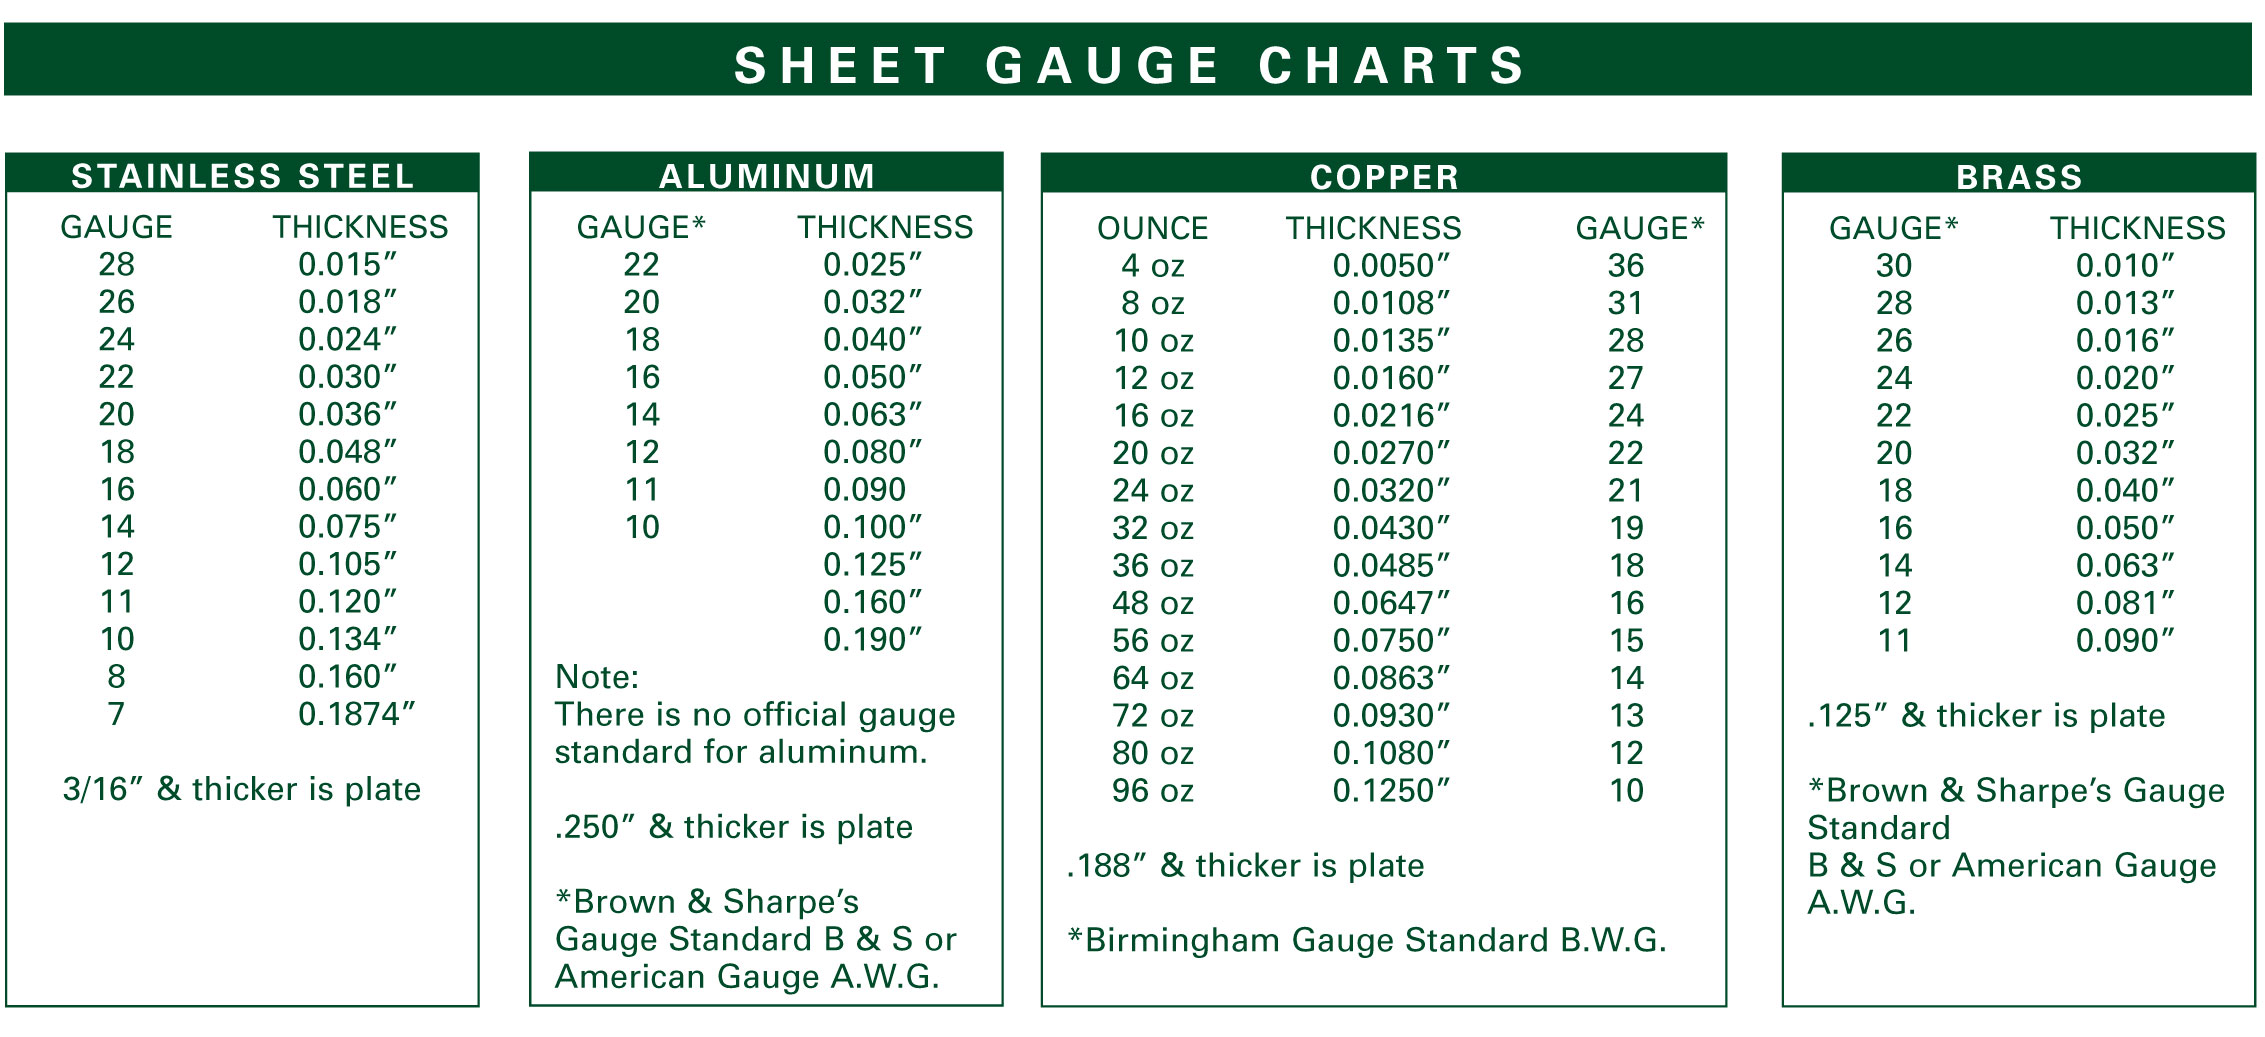 Gauge sheets fashionellaconstance gauge sheets greentooth Image collections